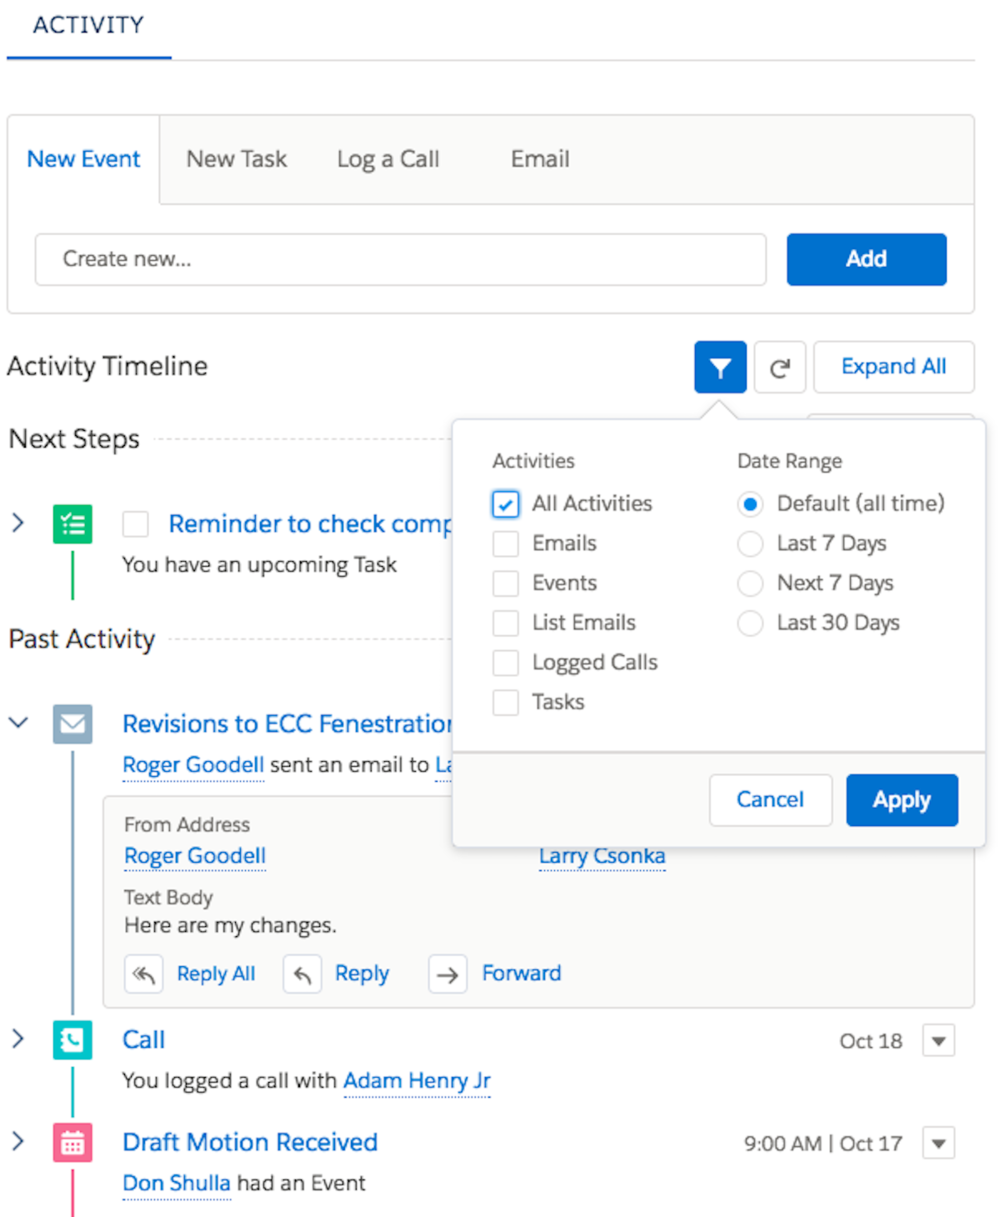 Copy of Activity View